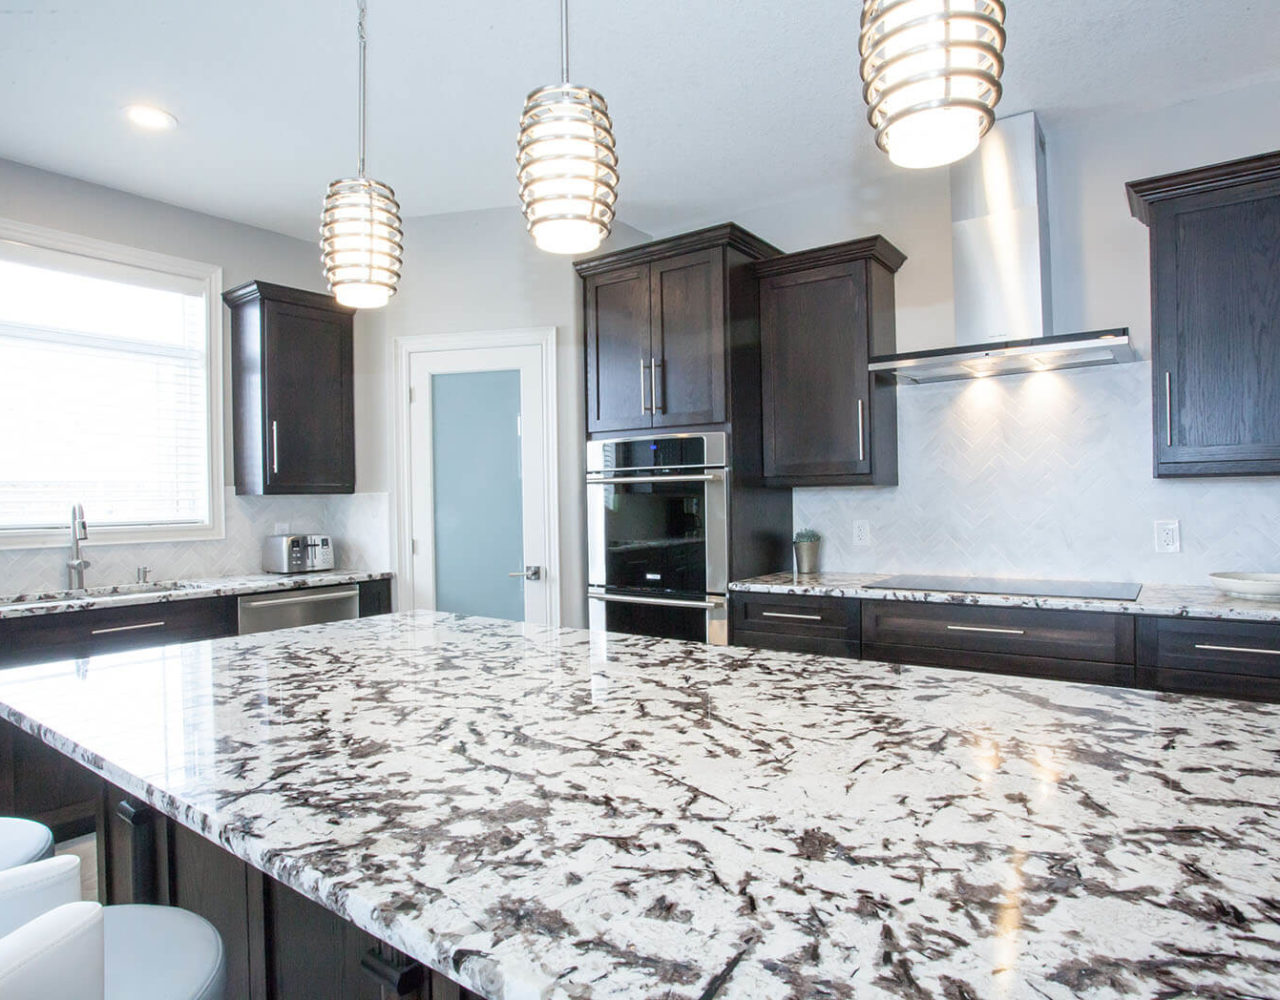 Delicatus Supreme granite